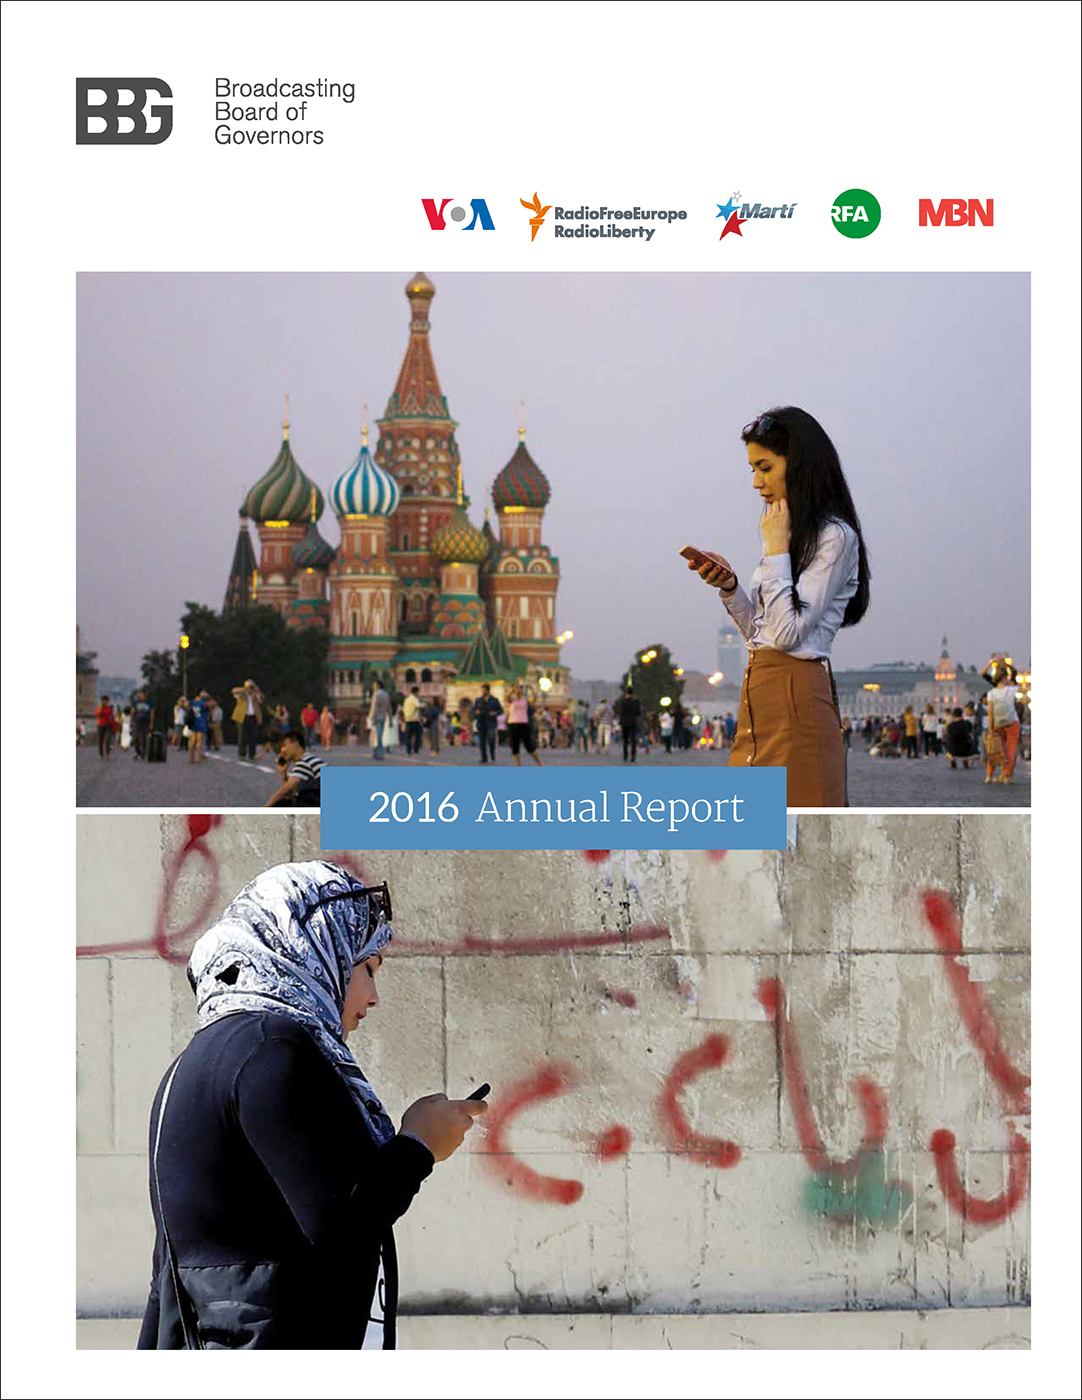 cover of a publication shows the logos of the BBG and 5 networks (VOA, RFE/Rl, OCB, RFA, MBN) above 2 photos of women looking at phone screens.